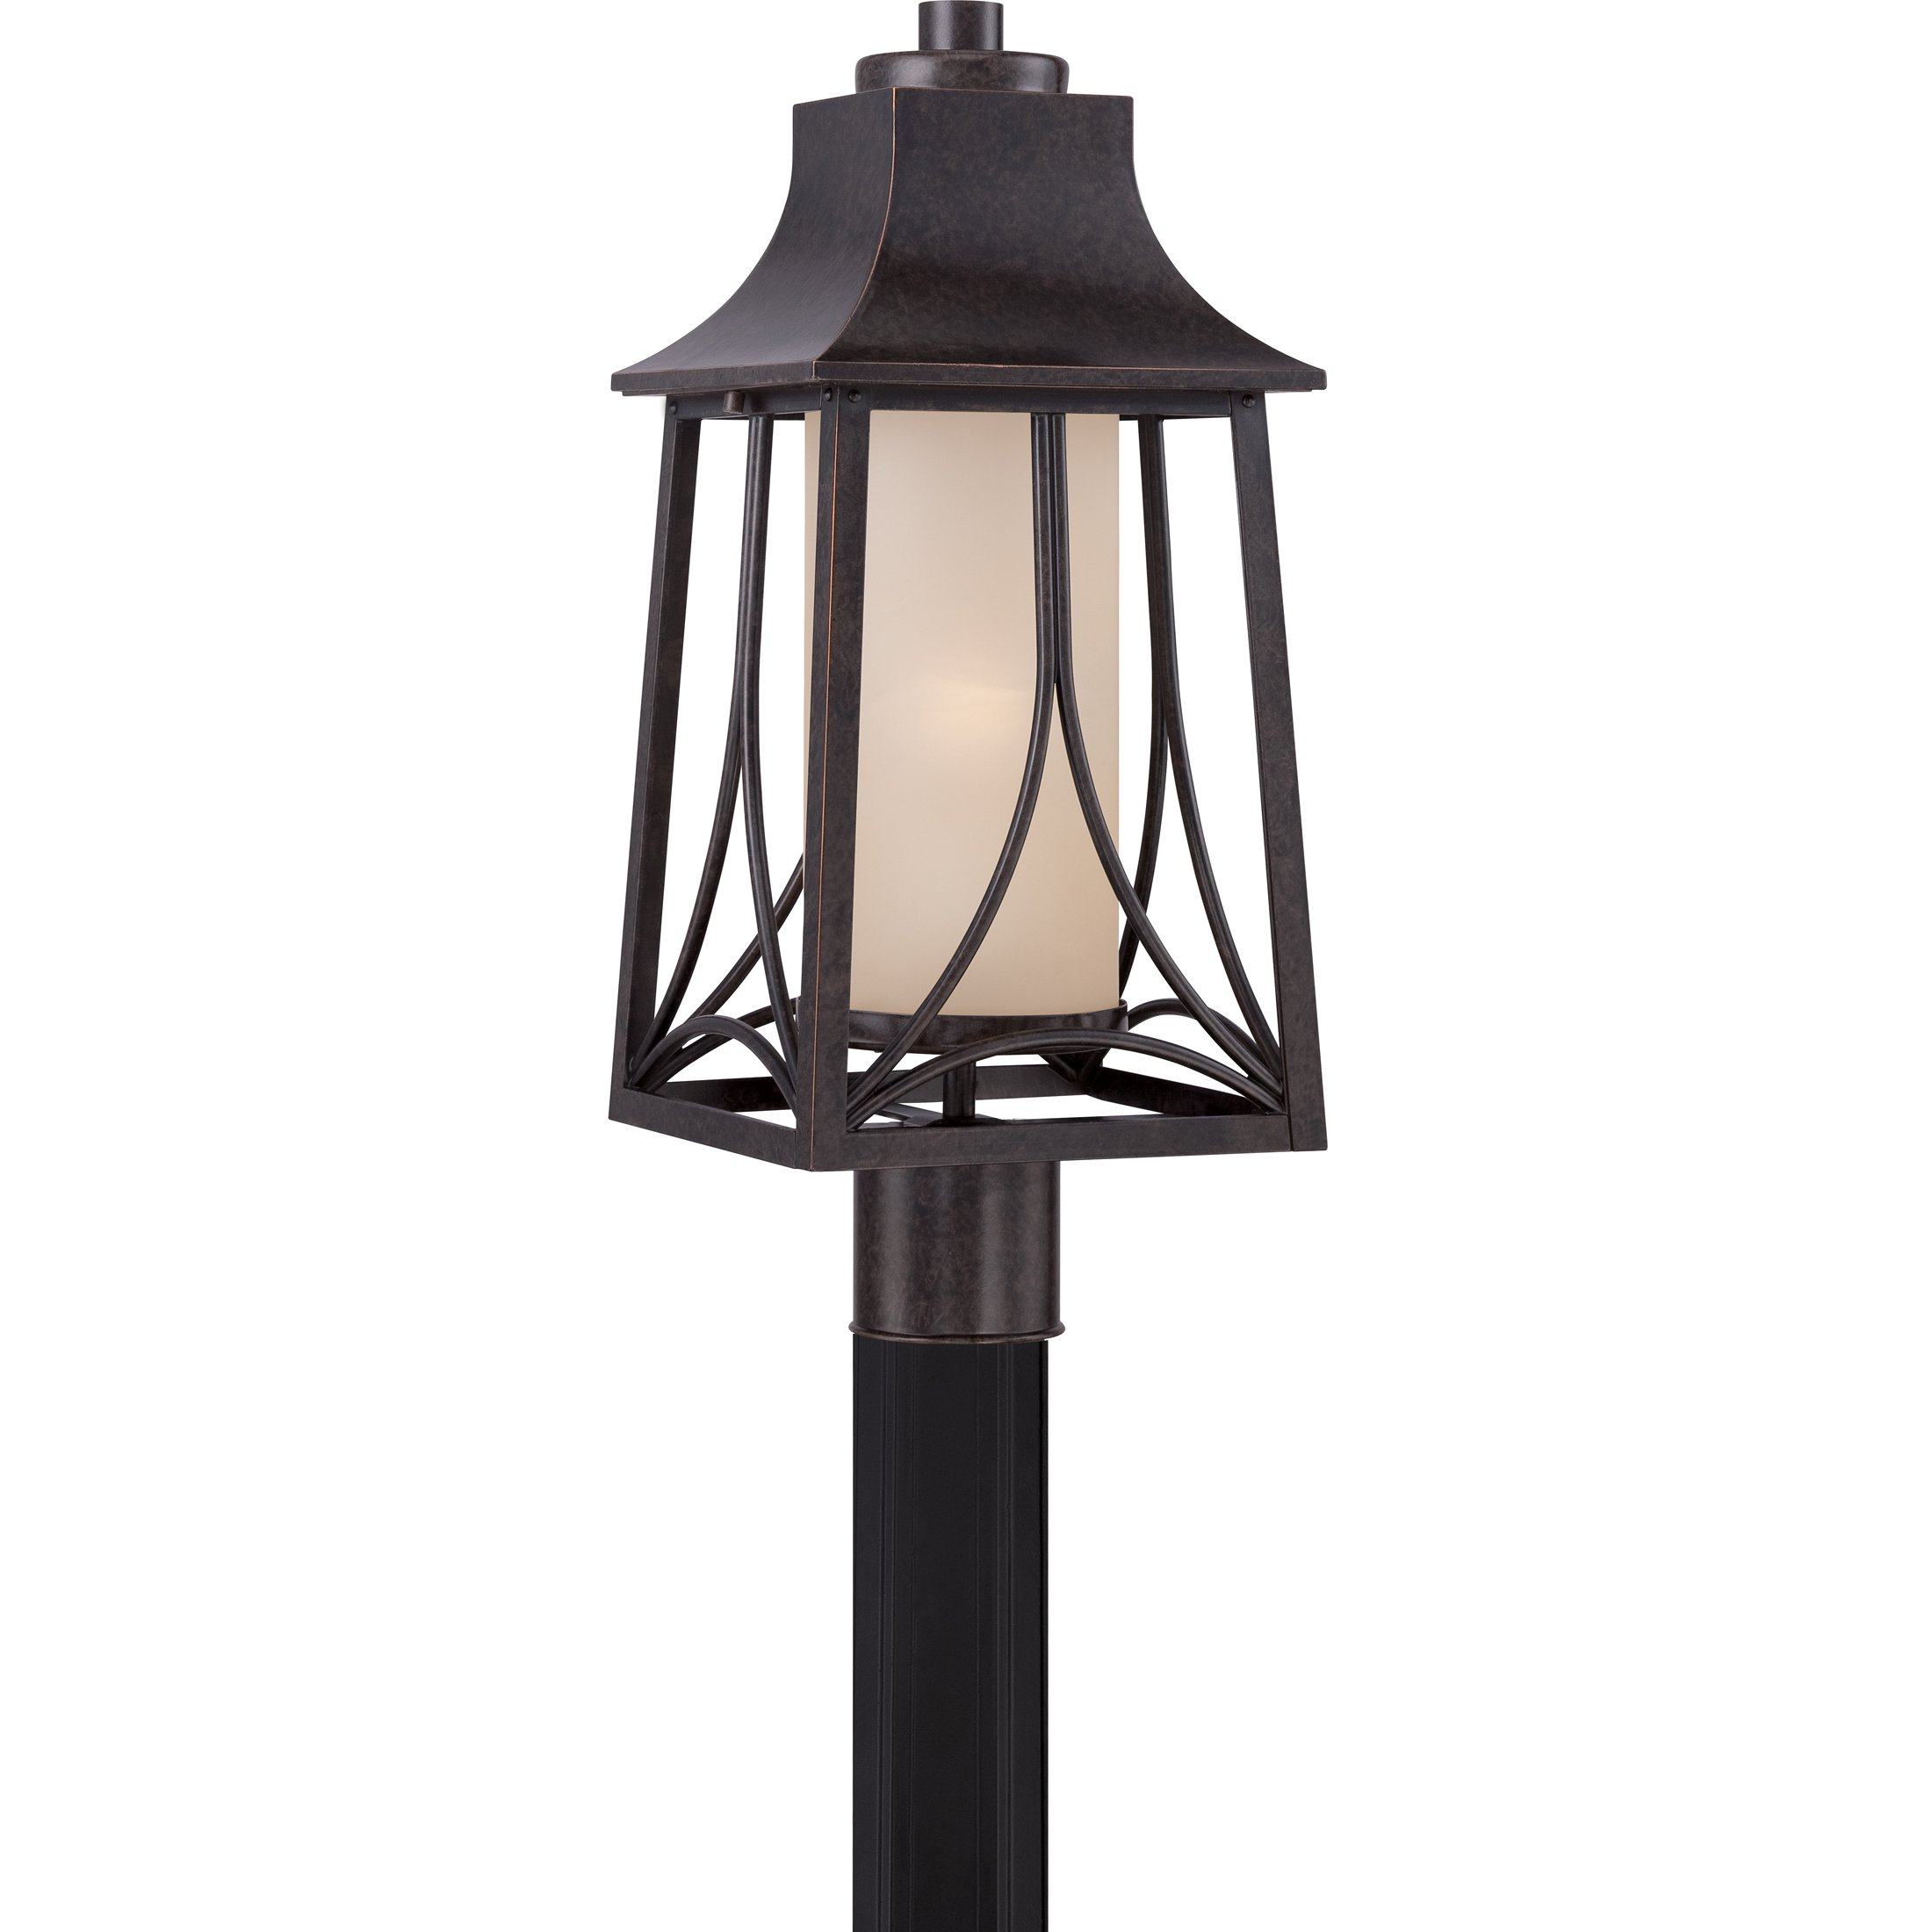 Quoizel HTR9008IB One Light Outdoor Post Lantern by Quoizel